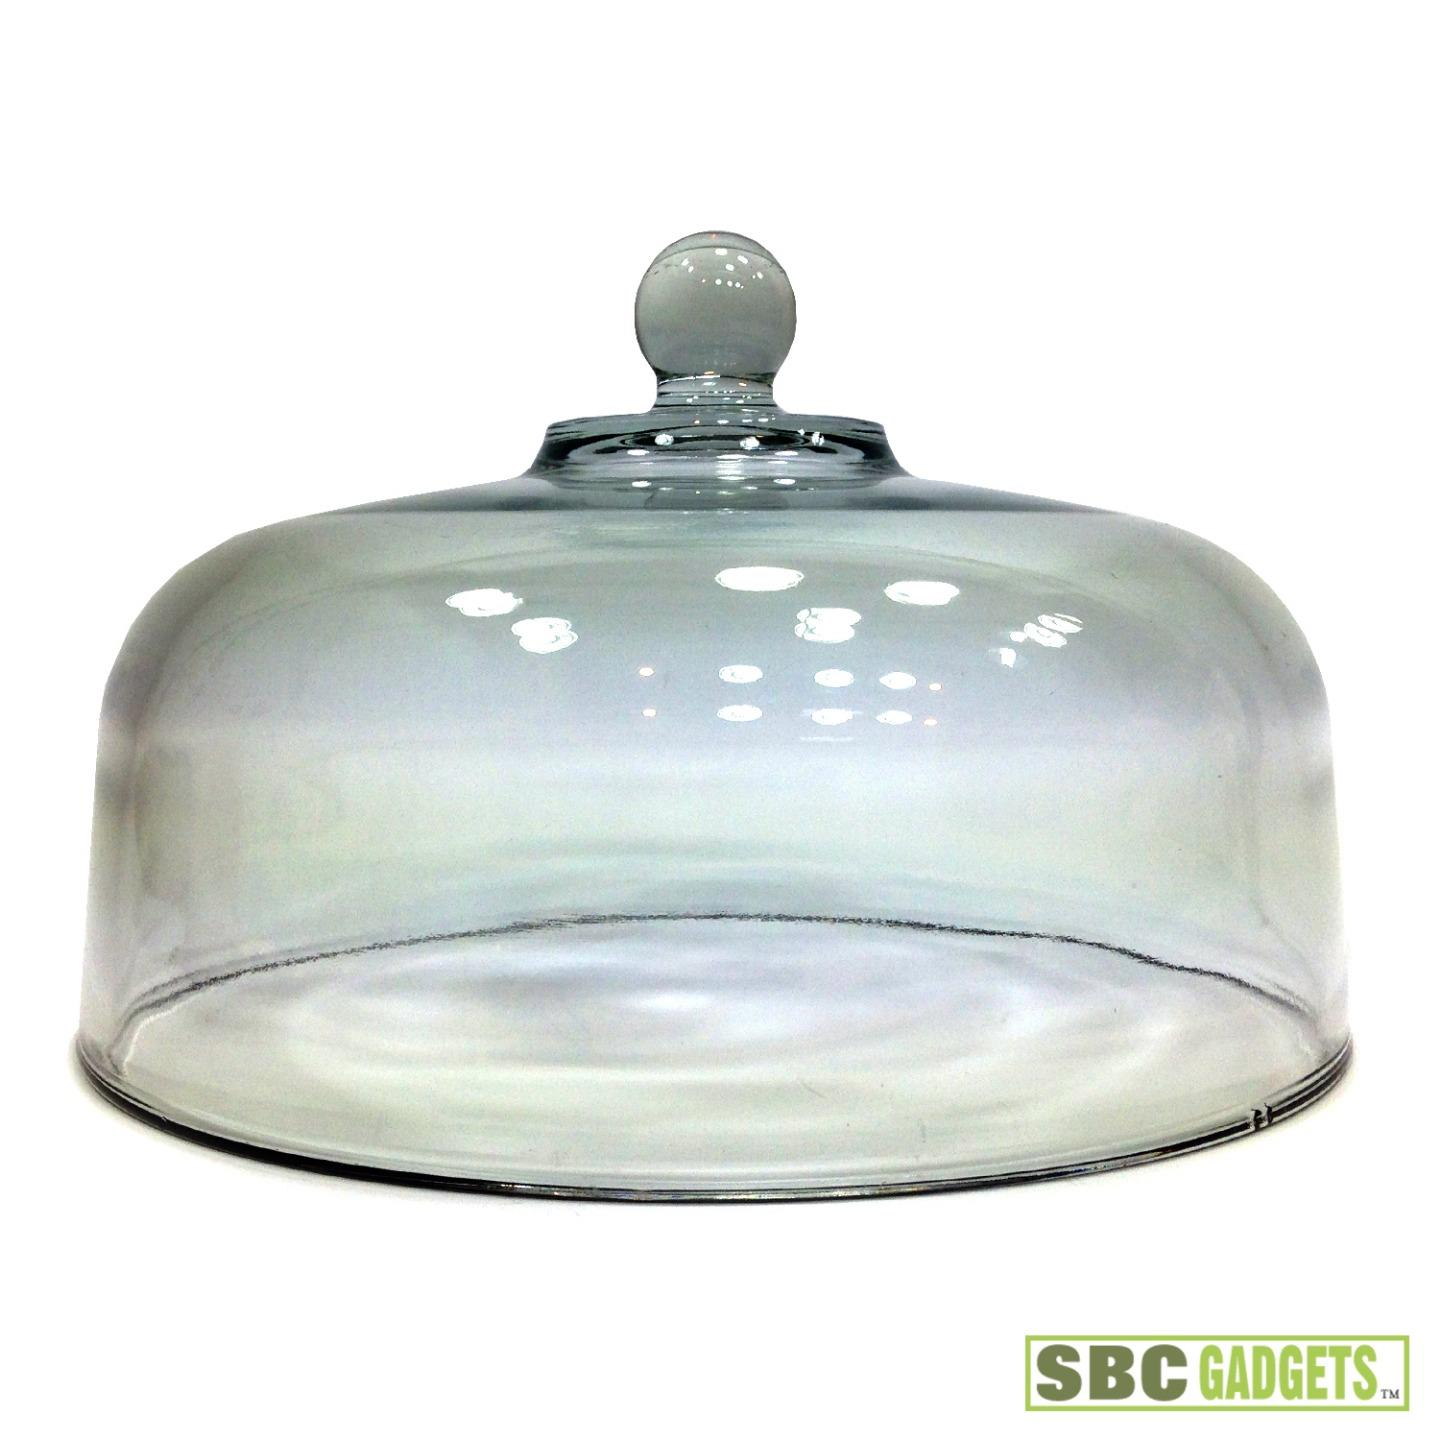 Glass Dome Cover, Wholesale Various High Quality Glass Dome Cover Products from Global Glass Dome Cover Suppliers and Glass Dome Cover Factory,Importer,Exporter at shopnew-5uel8qry.cf